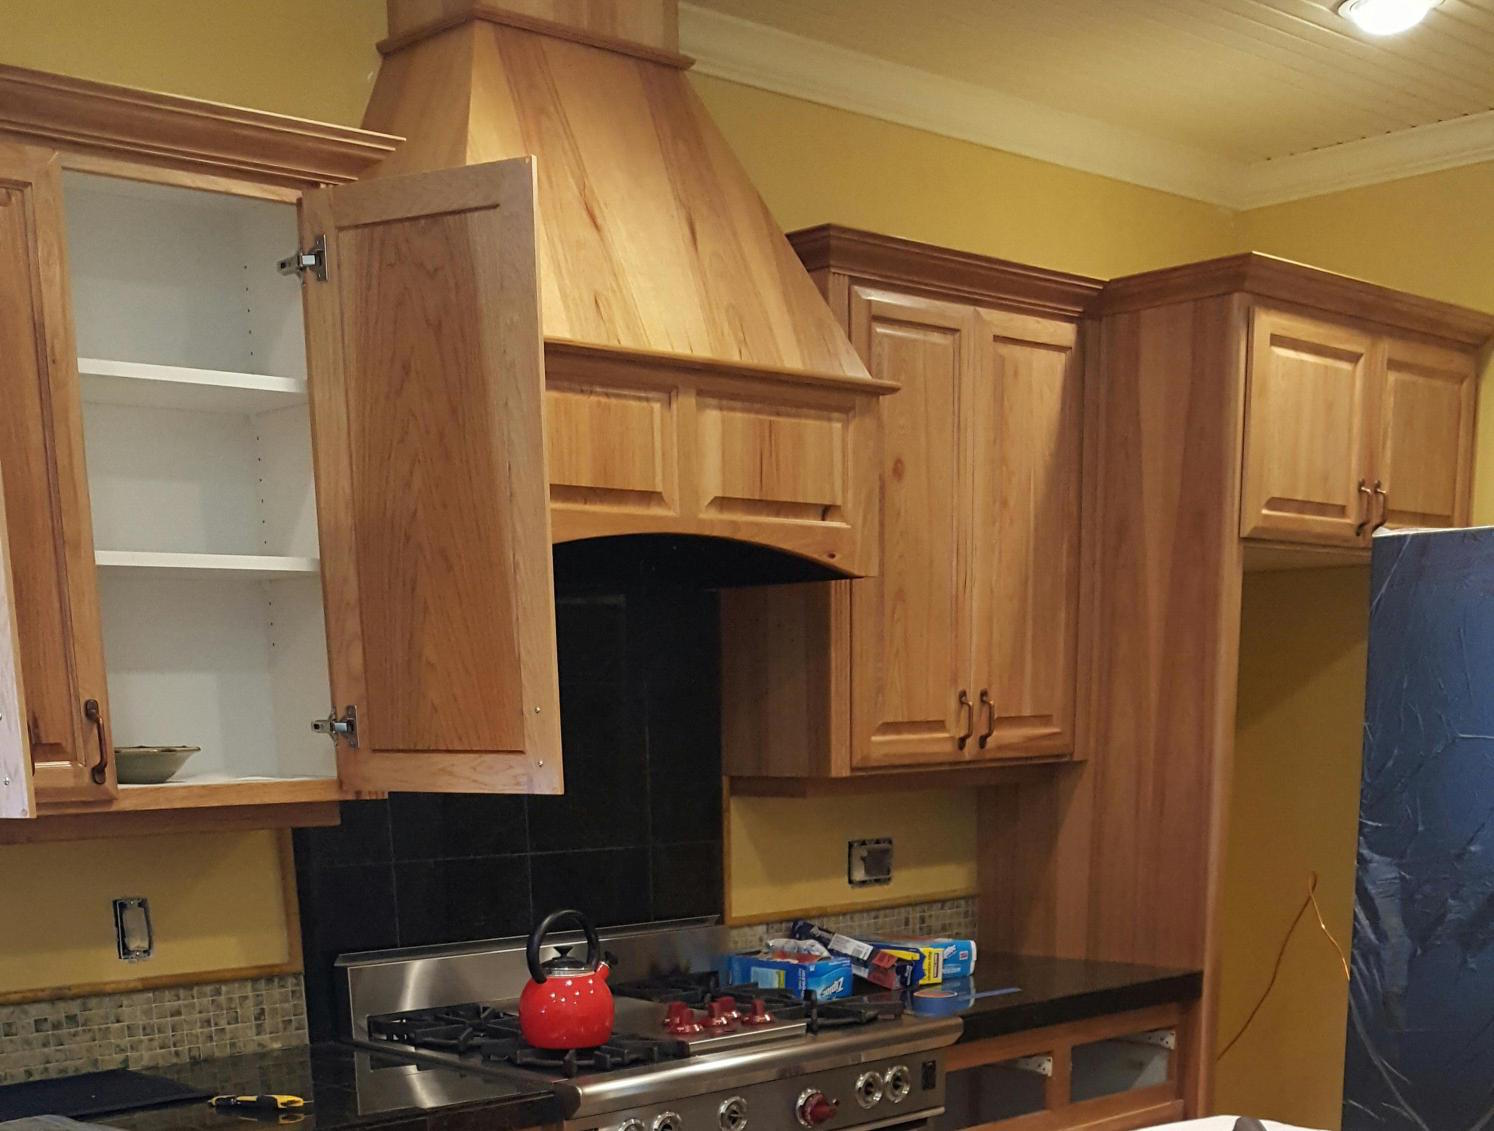 Refinishing Kitchen Cabinets and Trim by Toning in Bend, OR